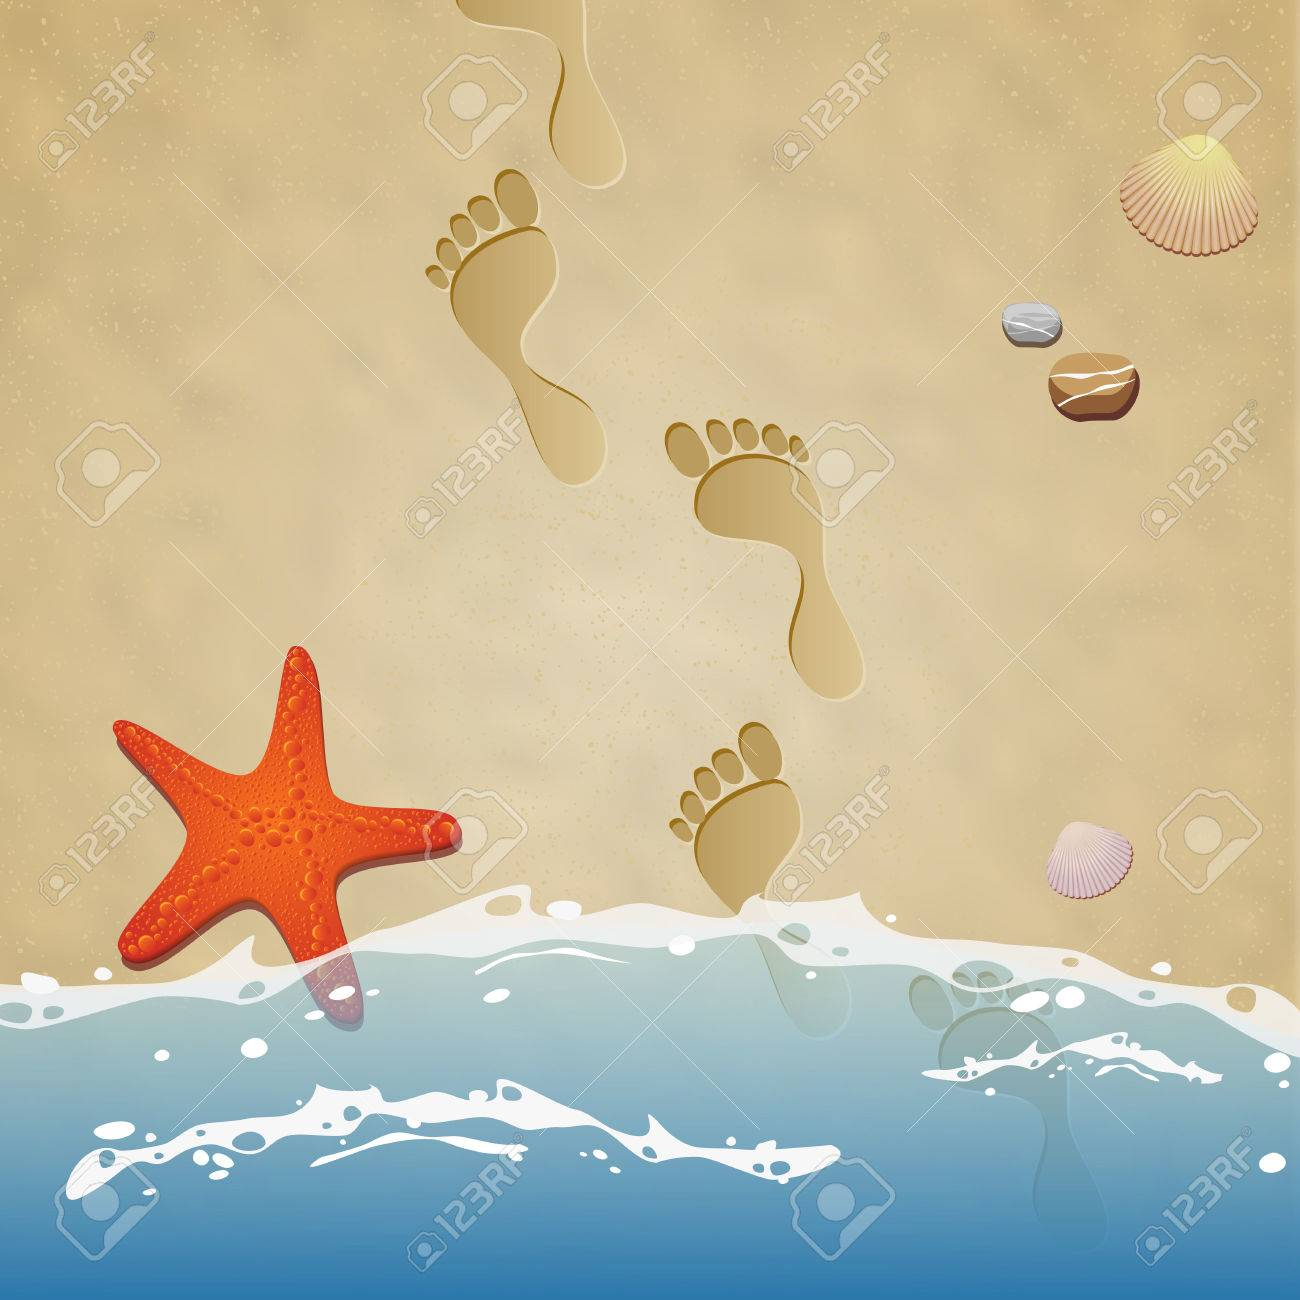 537 Footprints In The Sand Stock Vector Illustration And Royalty ...